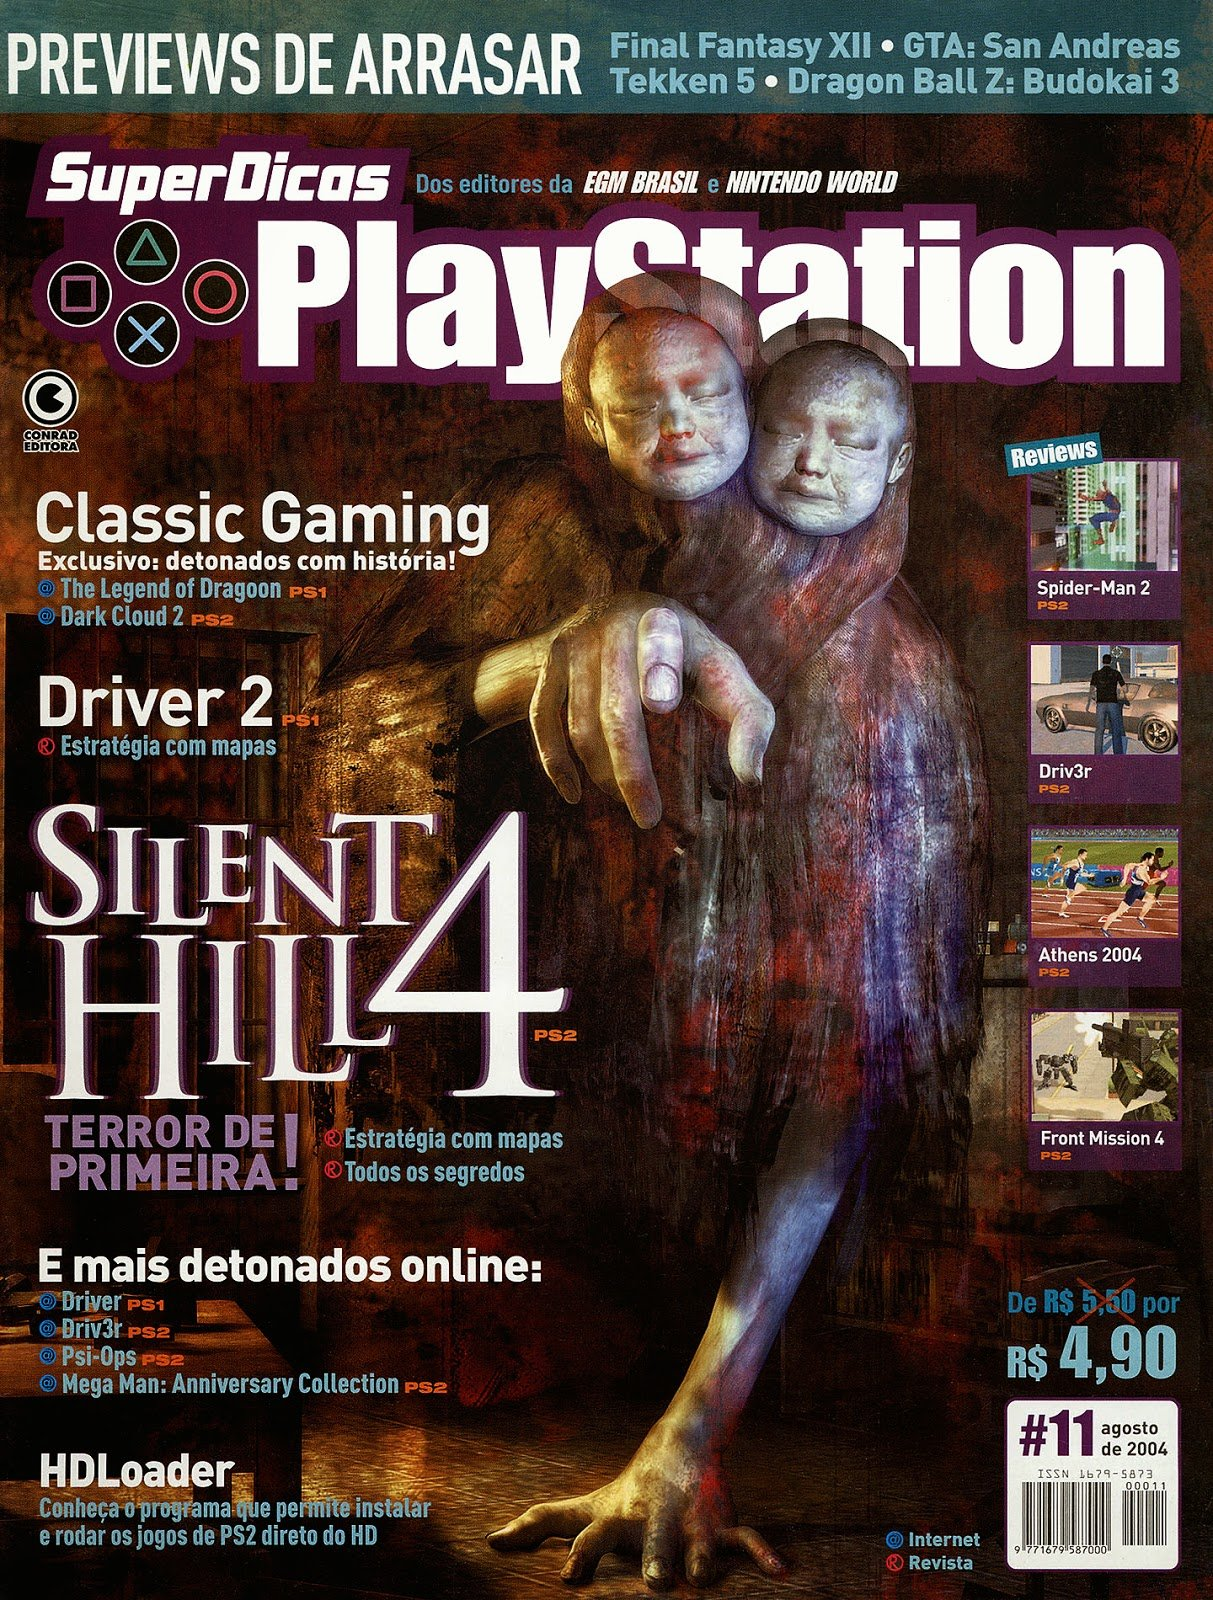 Super Dicas Playstation 11 (August 2004)